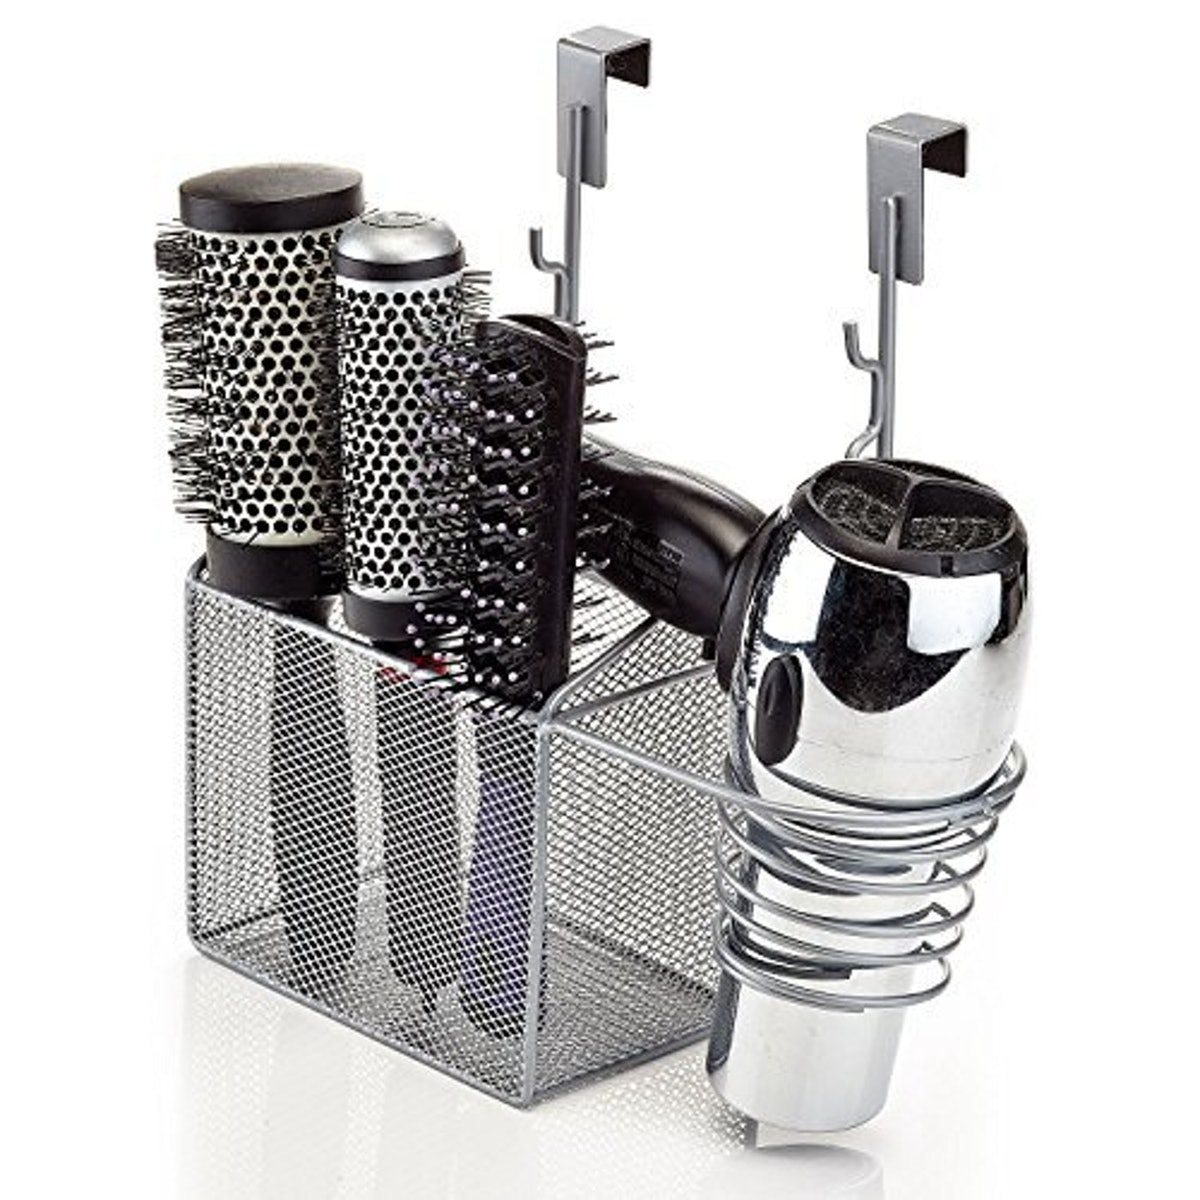 Home Intuition Hair Styling Organizer